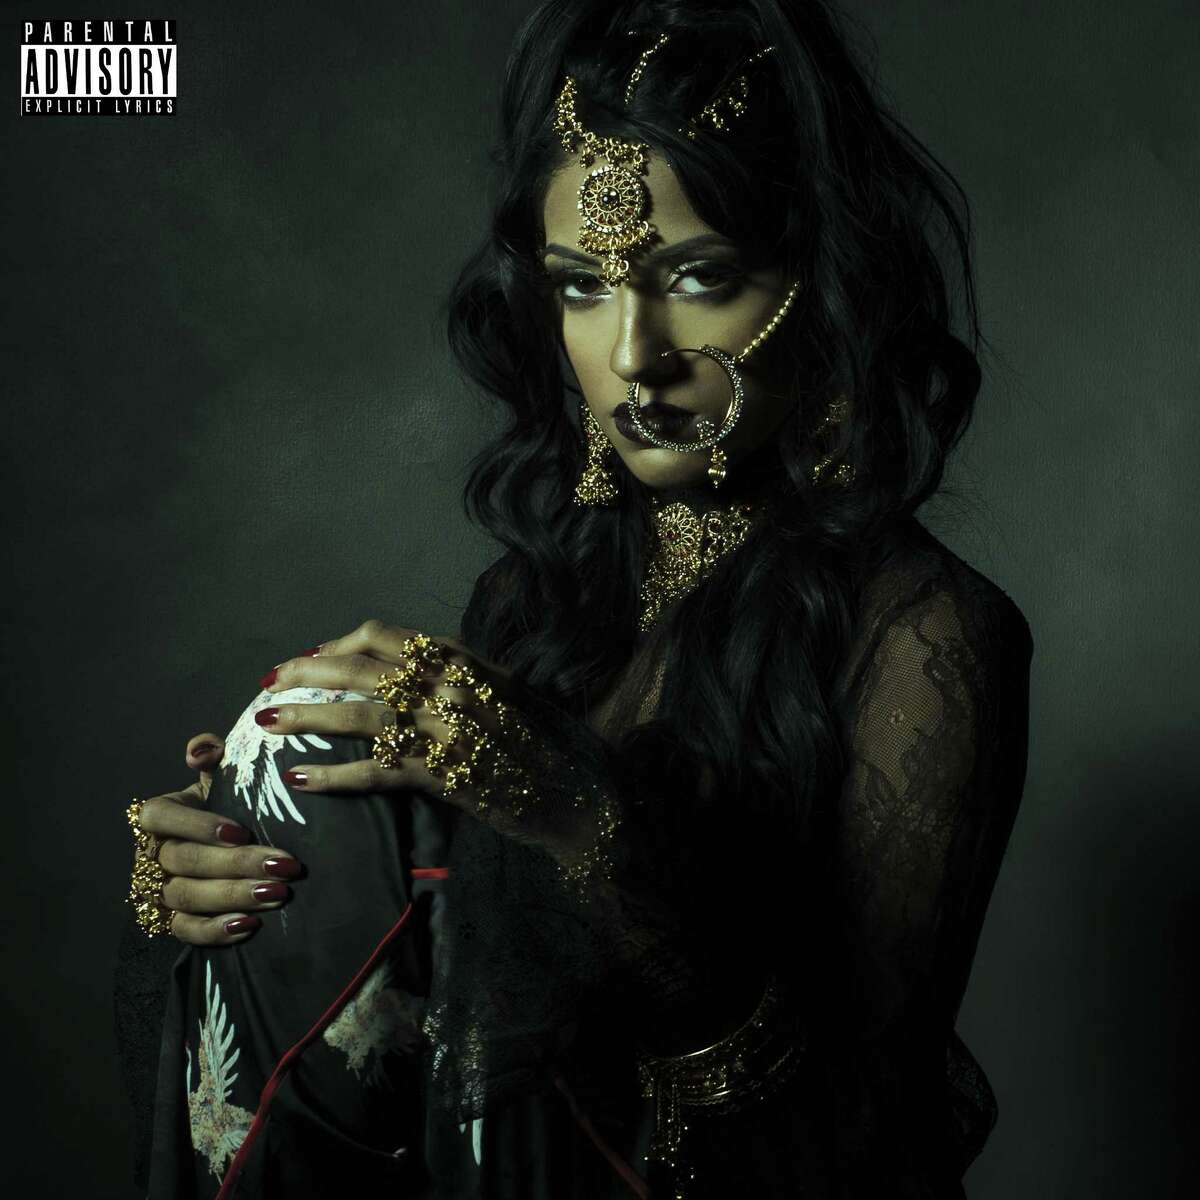 Jazzmine, a riff on the Aladdin classic A Whole New World, features Houston rapper Riff Raff.